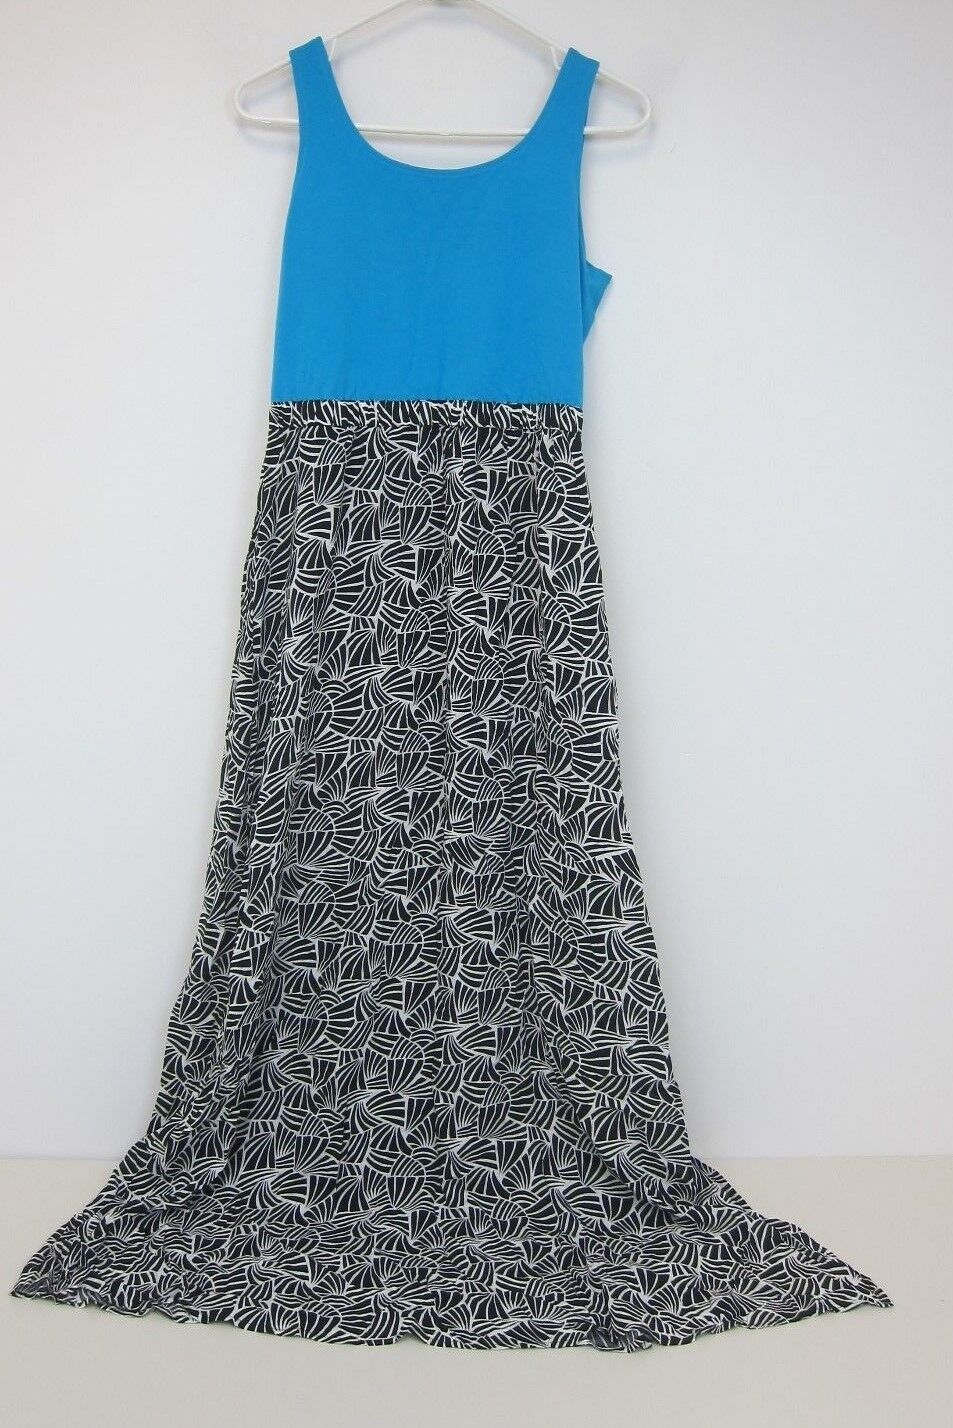 Brooklyn Industries Bella Maxi Dress - damen Medium - schwarz Blau - NWT